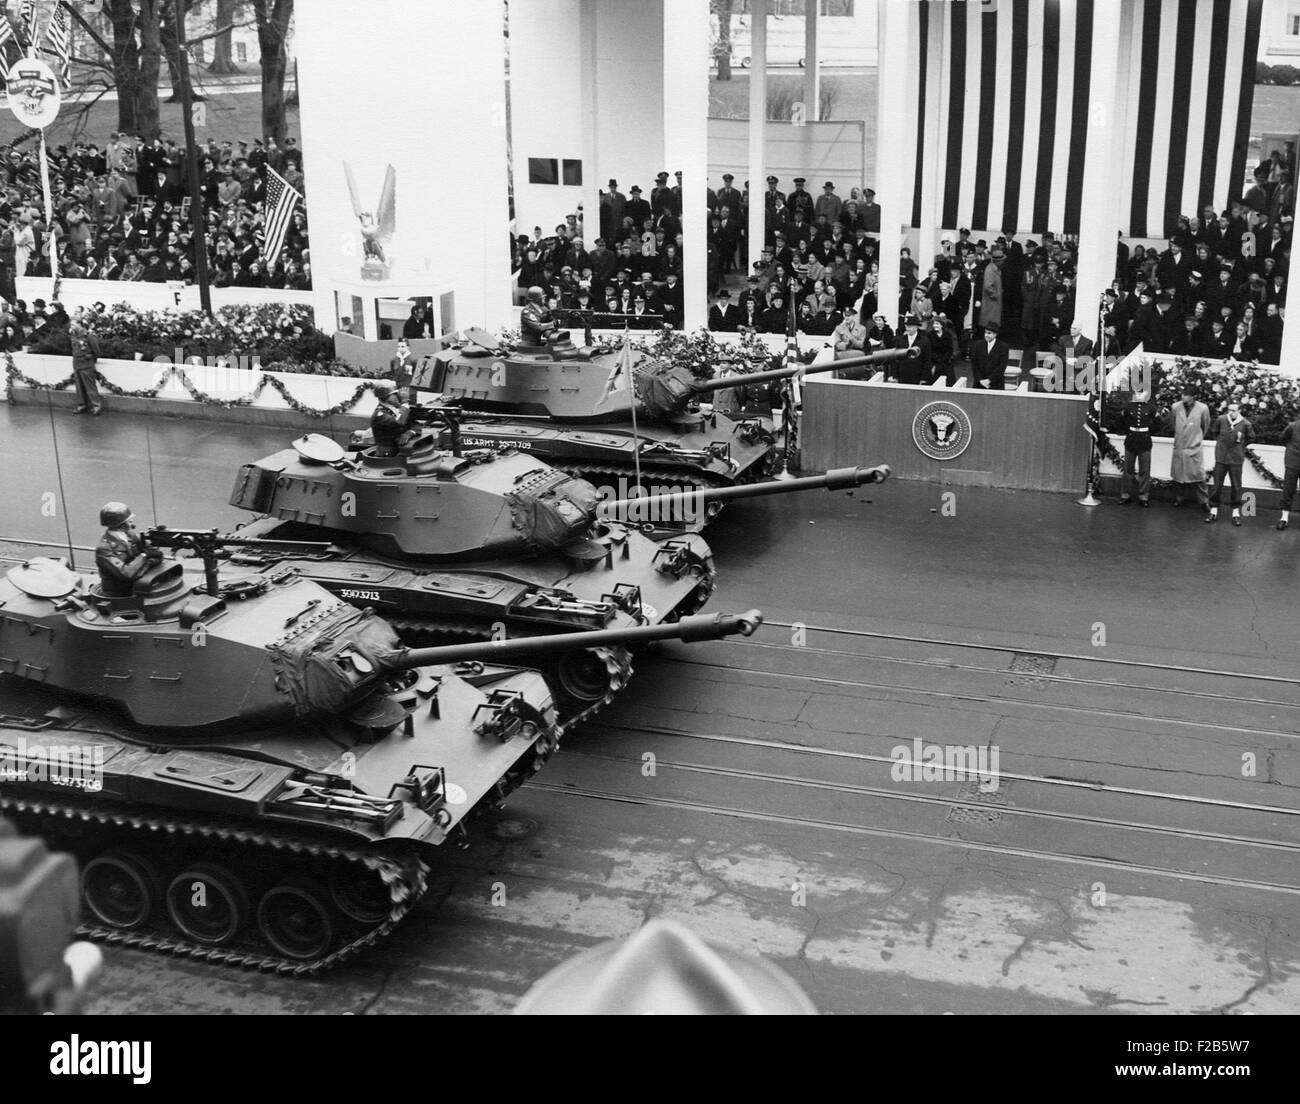 U.S. Army tanks pass Eisenhower's reviewing stand during the Inaugural parade. Jan 21, 1957. - (BSLOC20141638) Stock Photo